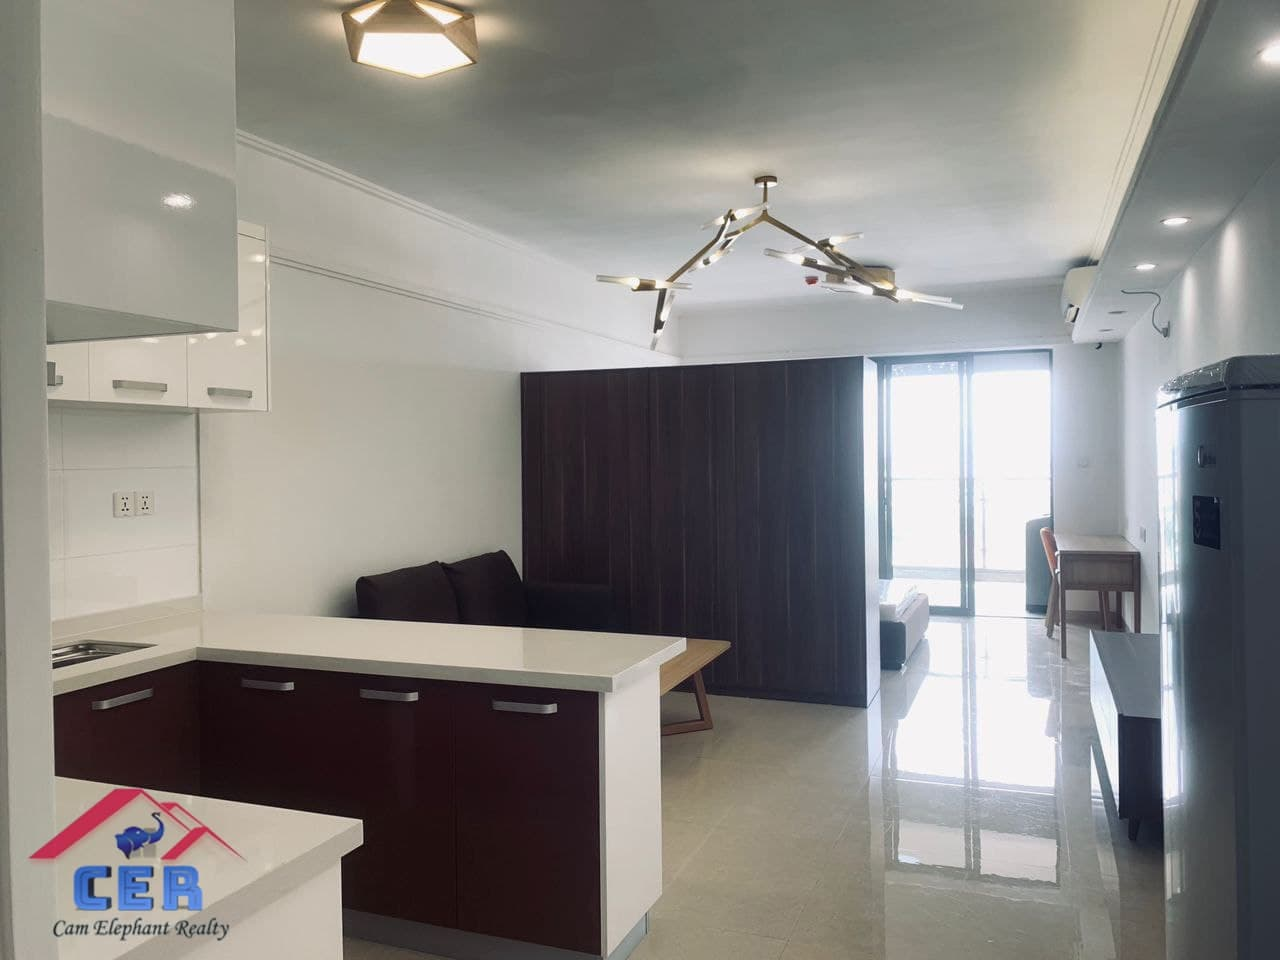 Western Condo for Rent (1Bedroom: Tonle Bassac area)